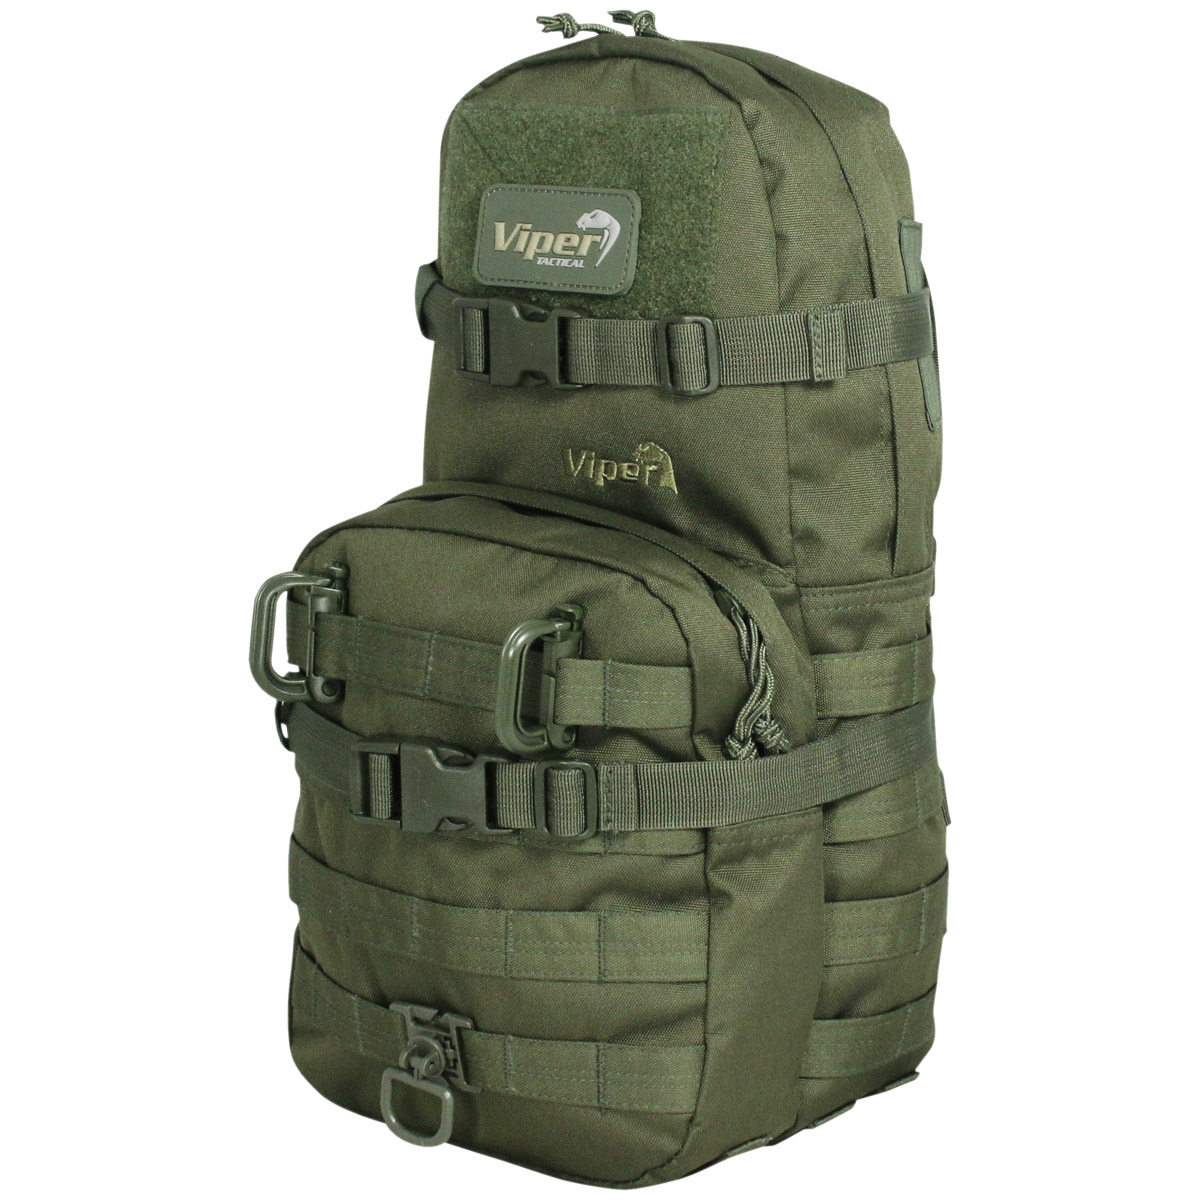 Viper One Day Modular Pack Army Molle Backpack Hydration